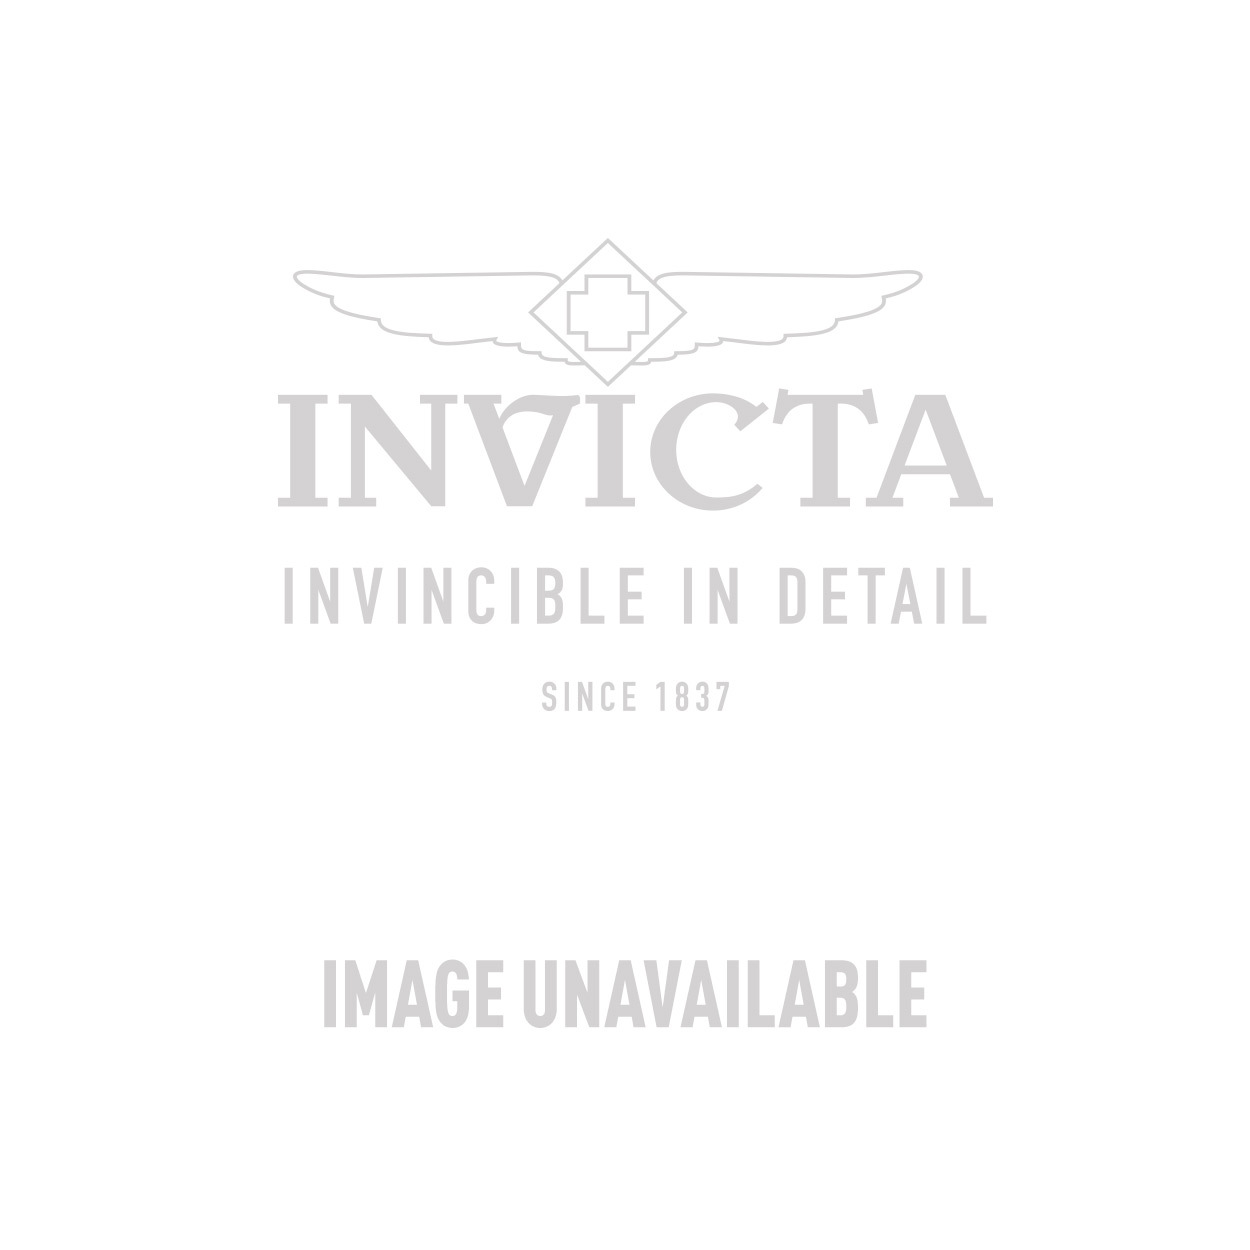 Invicta Specialty Swiss Movement Quartz Watch - Gold case with White tone Leather band - Model 12174